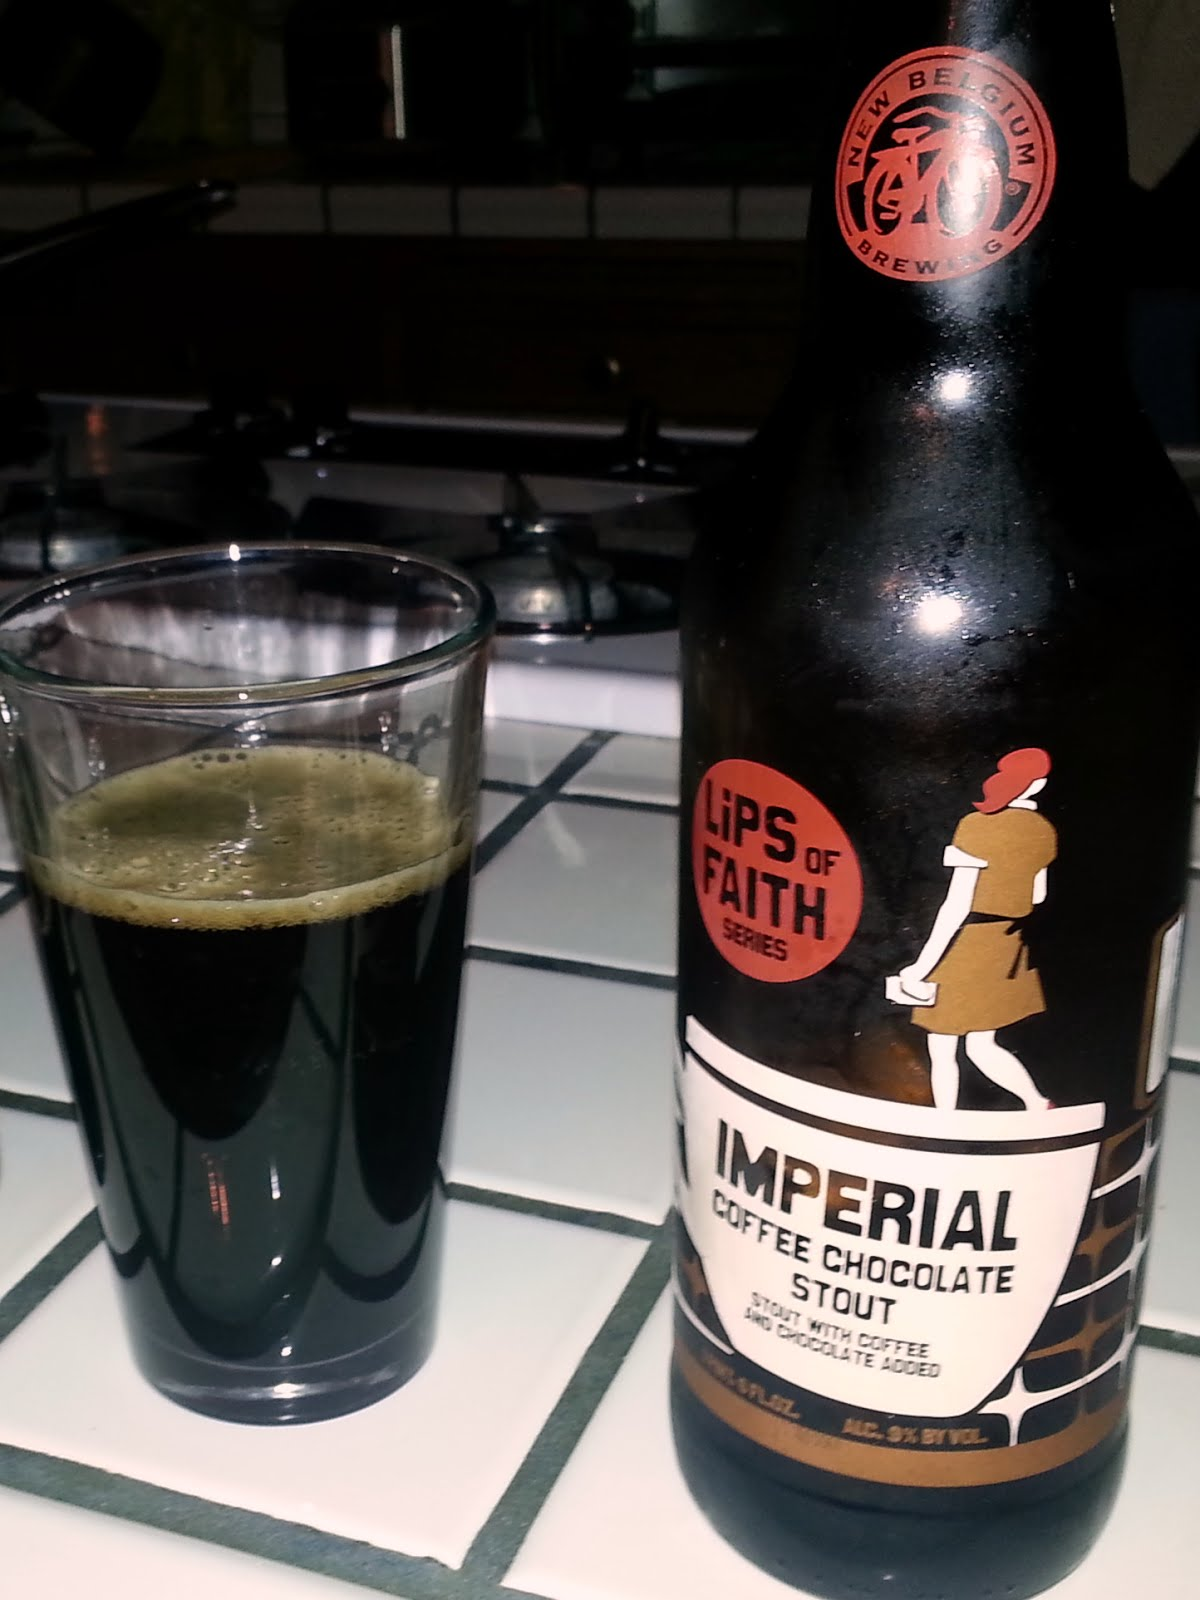 Drink New Belgium Imperial Coffee Chocolate Stout - Adventures of Me